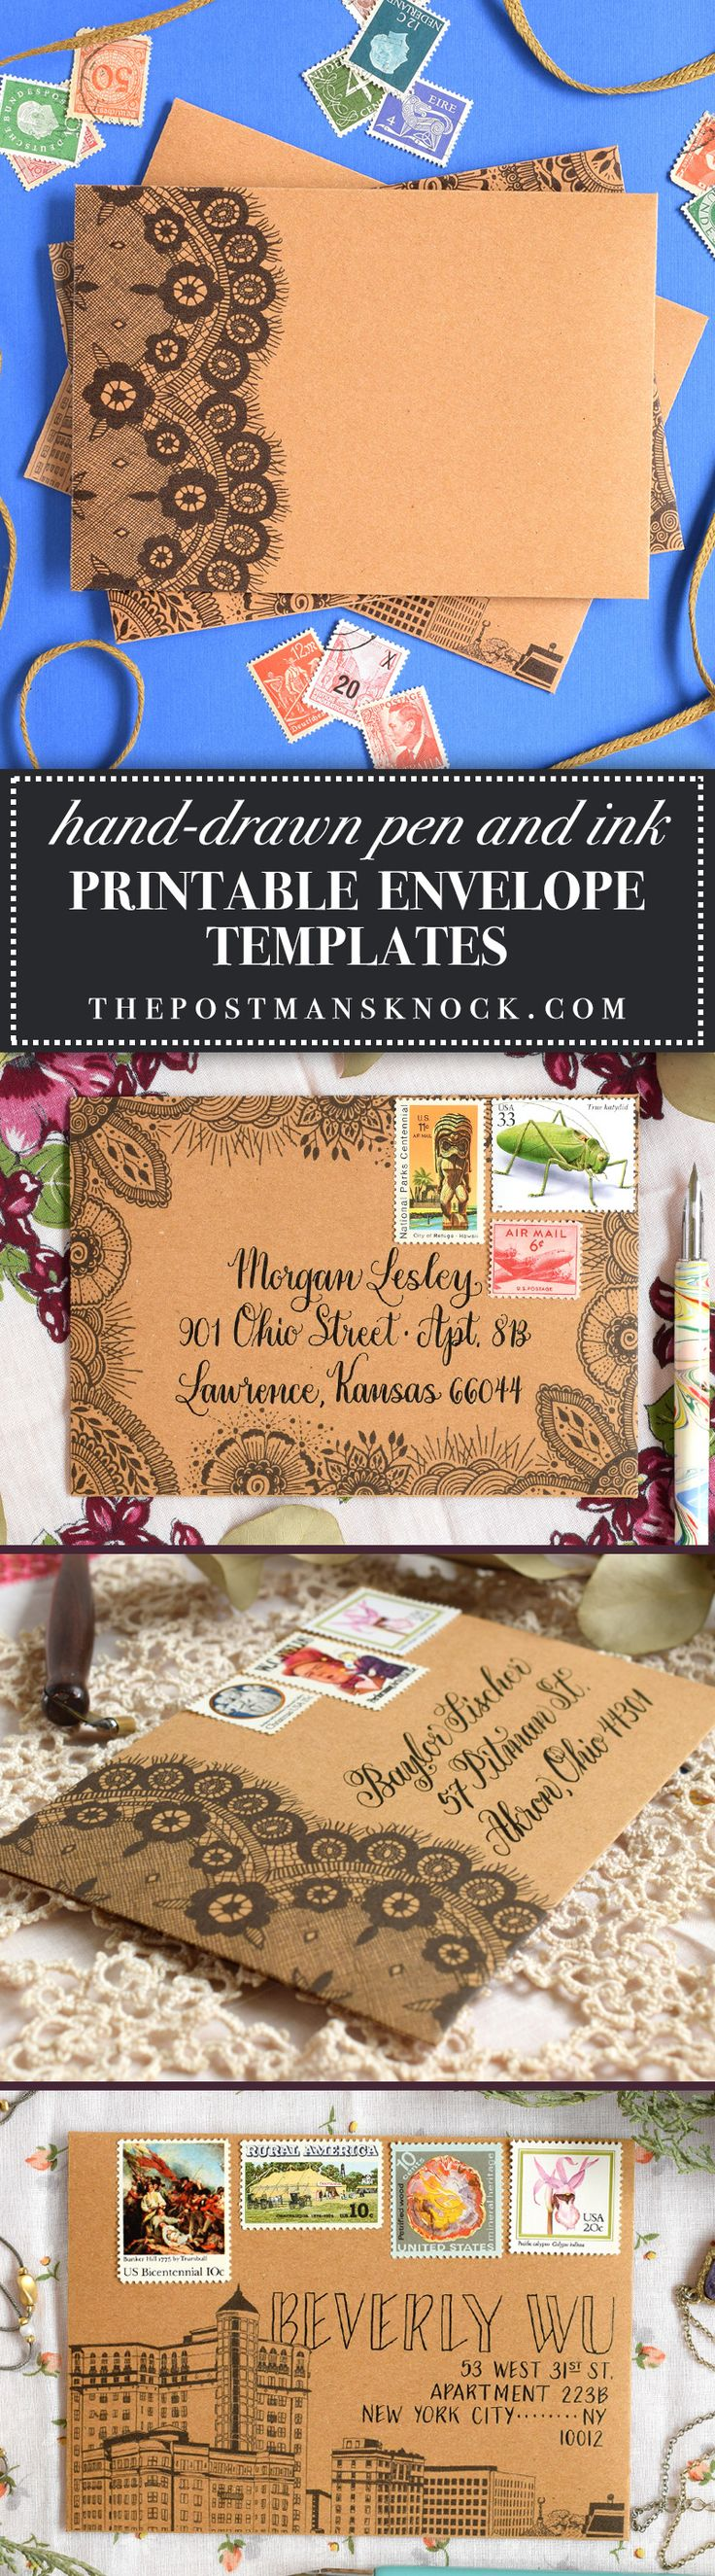 Hand-drawn printable envelope templates - provides a shortcut to intricate and impressive mail art! $4.50 for 3 PDF files